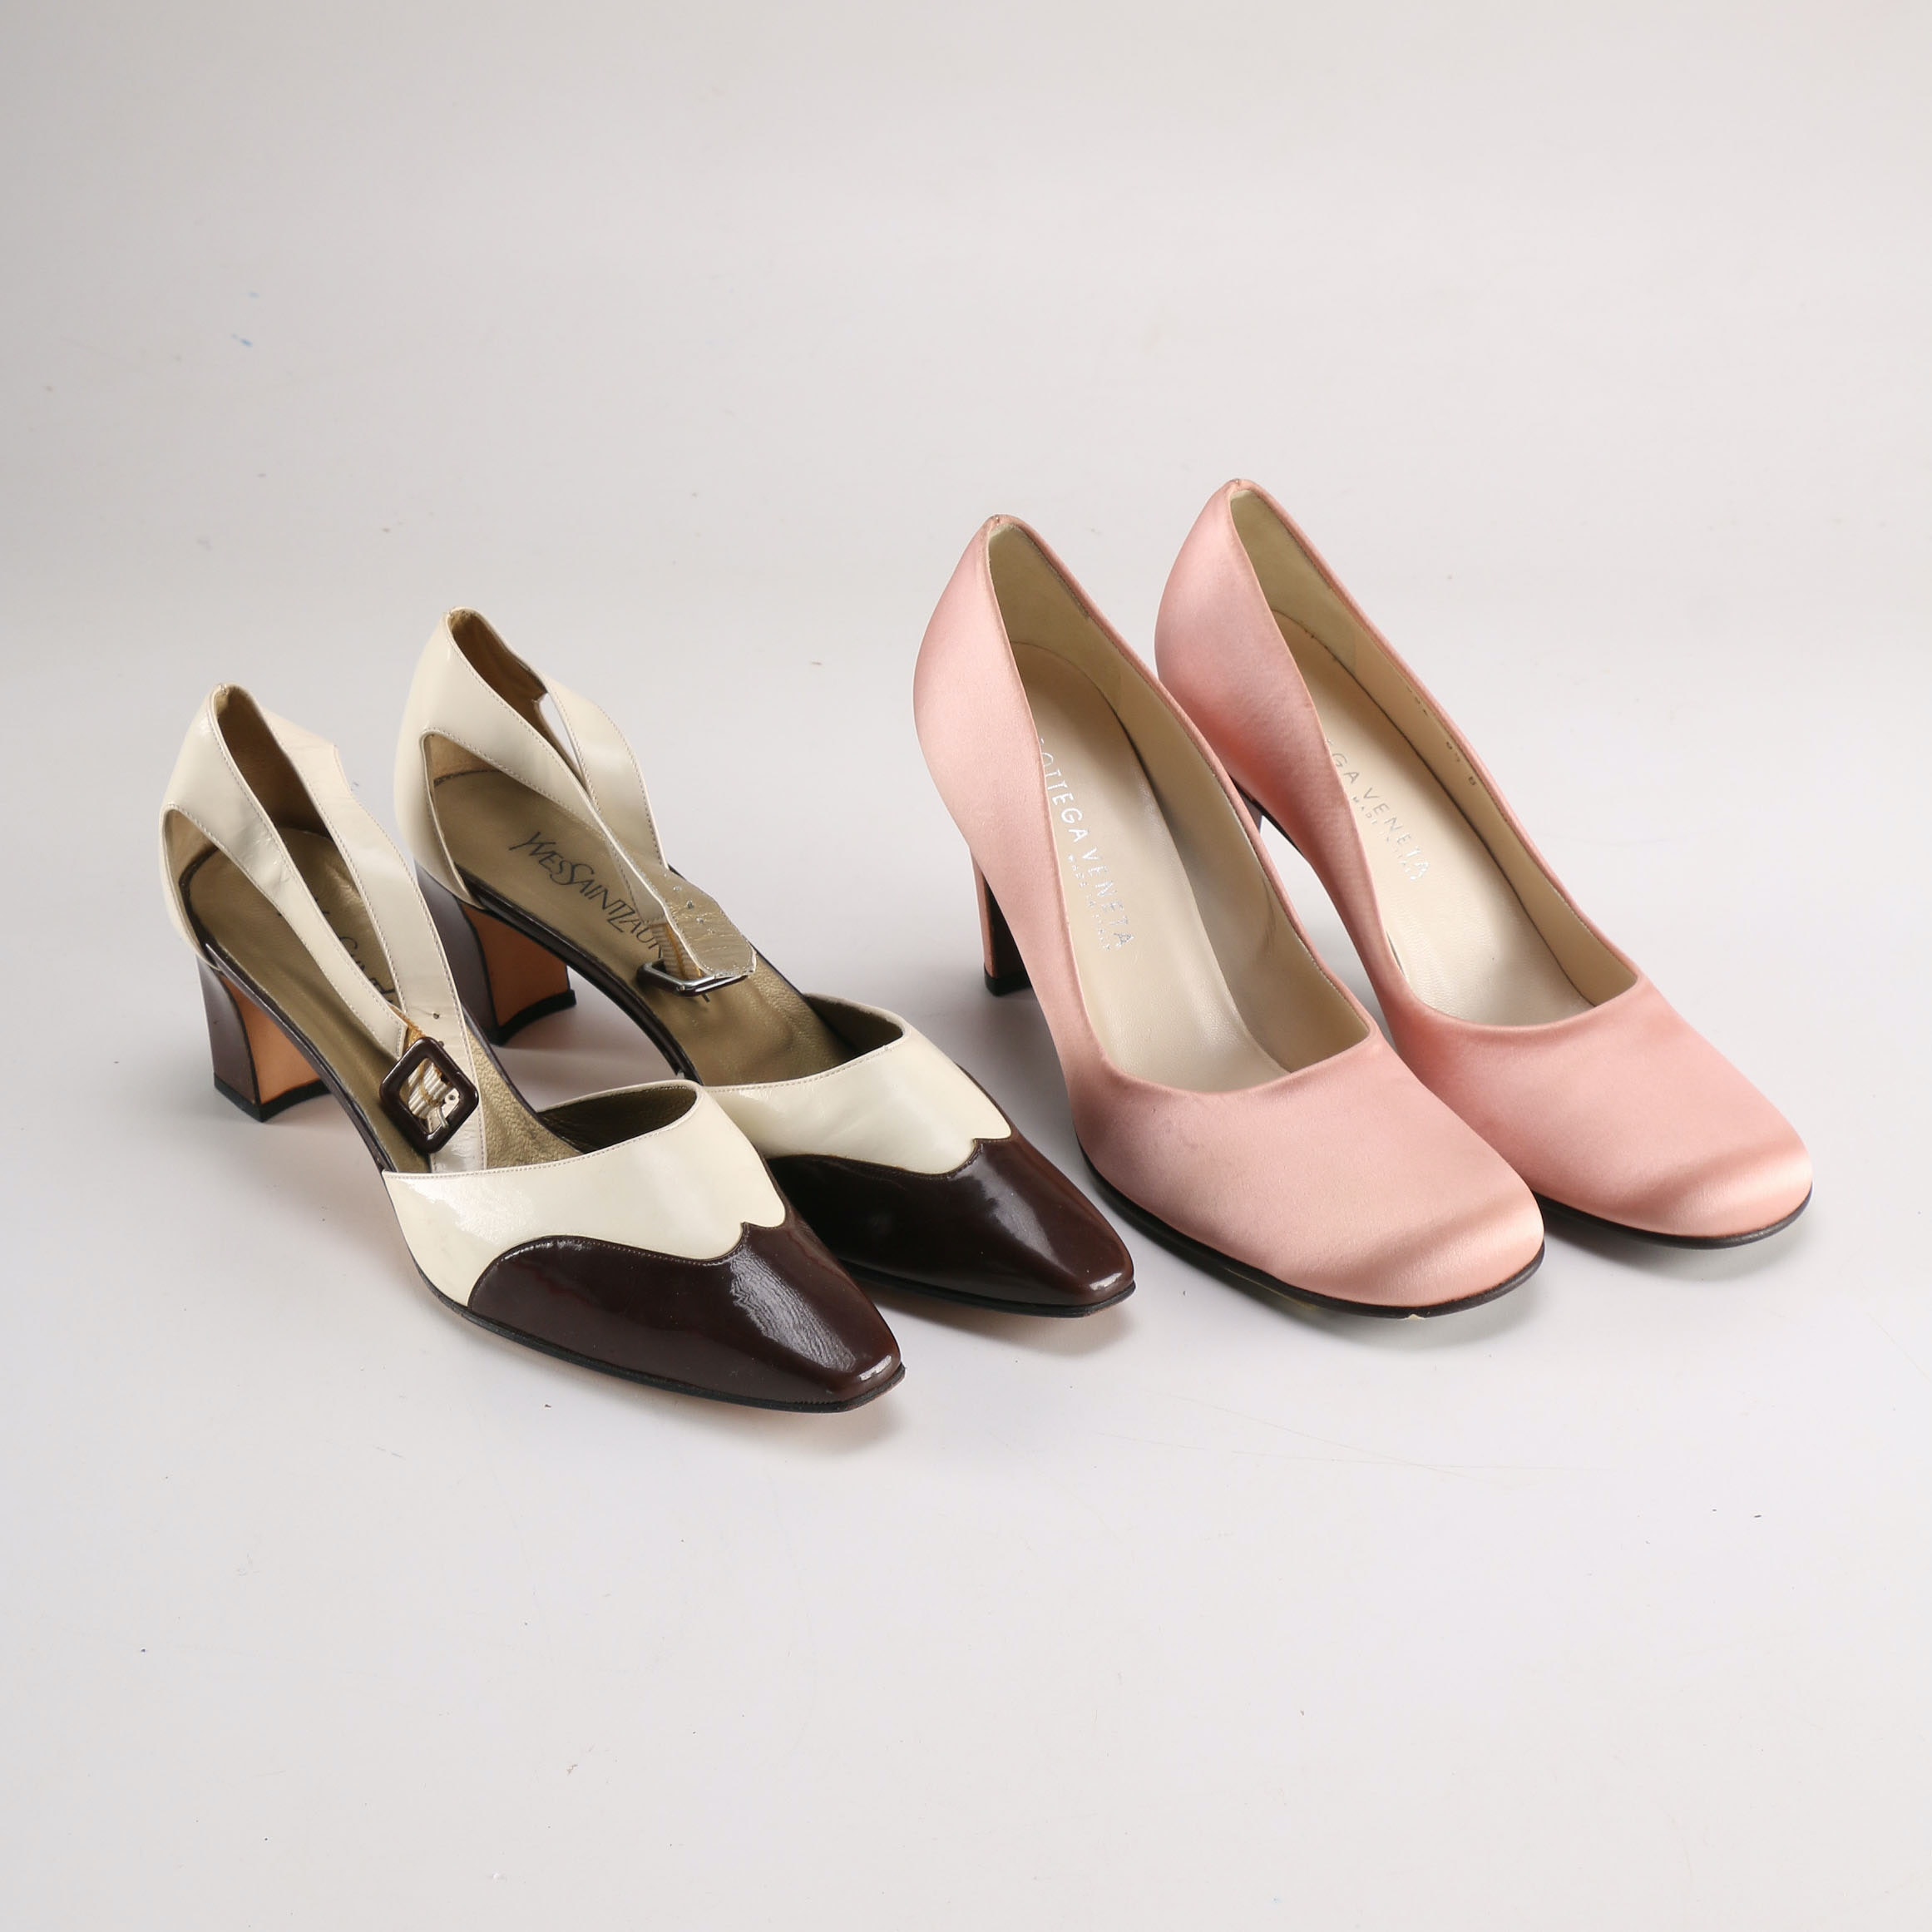 Vintage Yves Saint Laurent and Bottega Veneta Women's Pumps